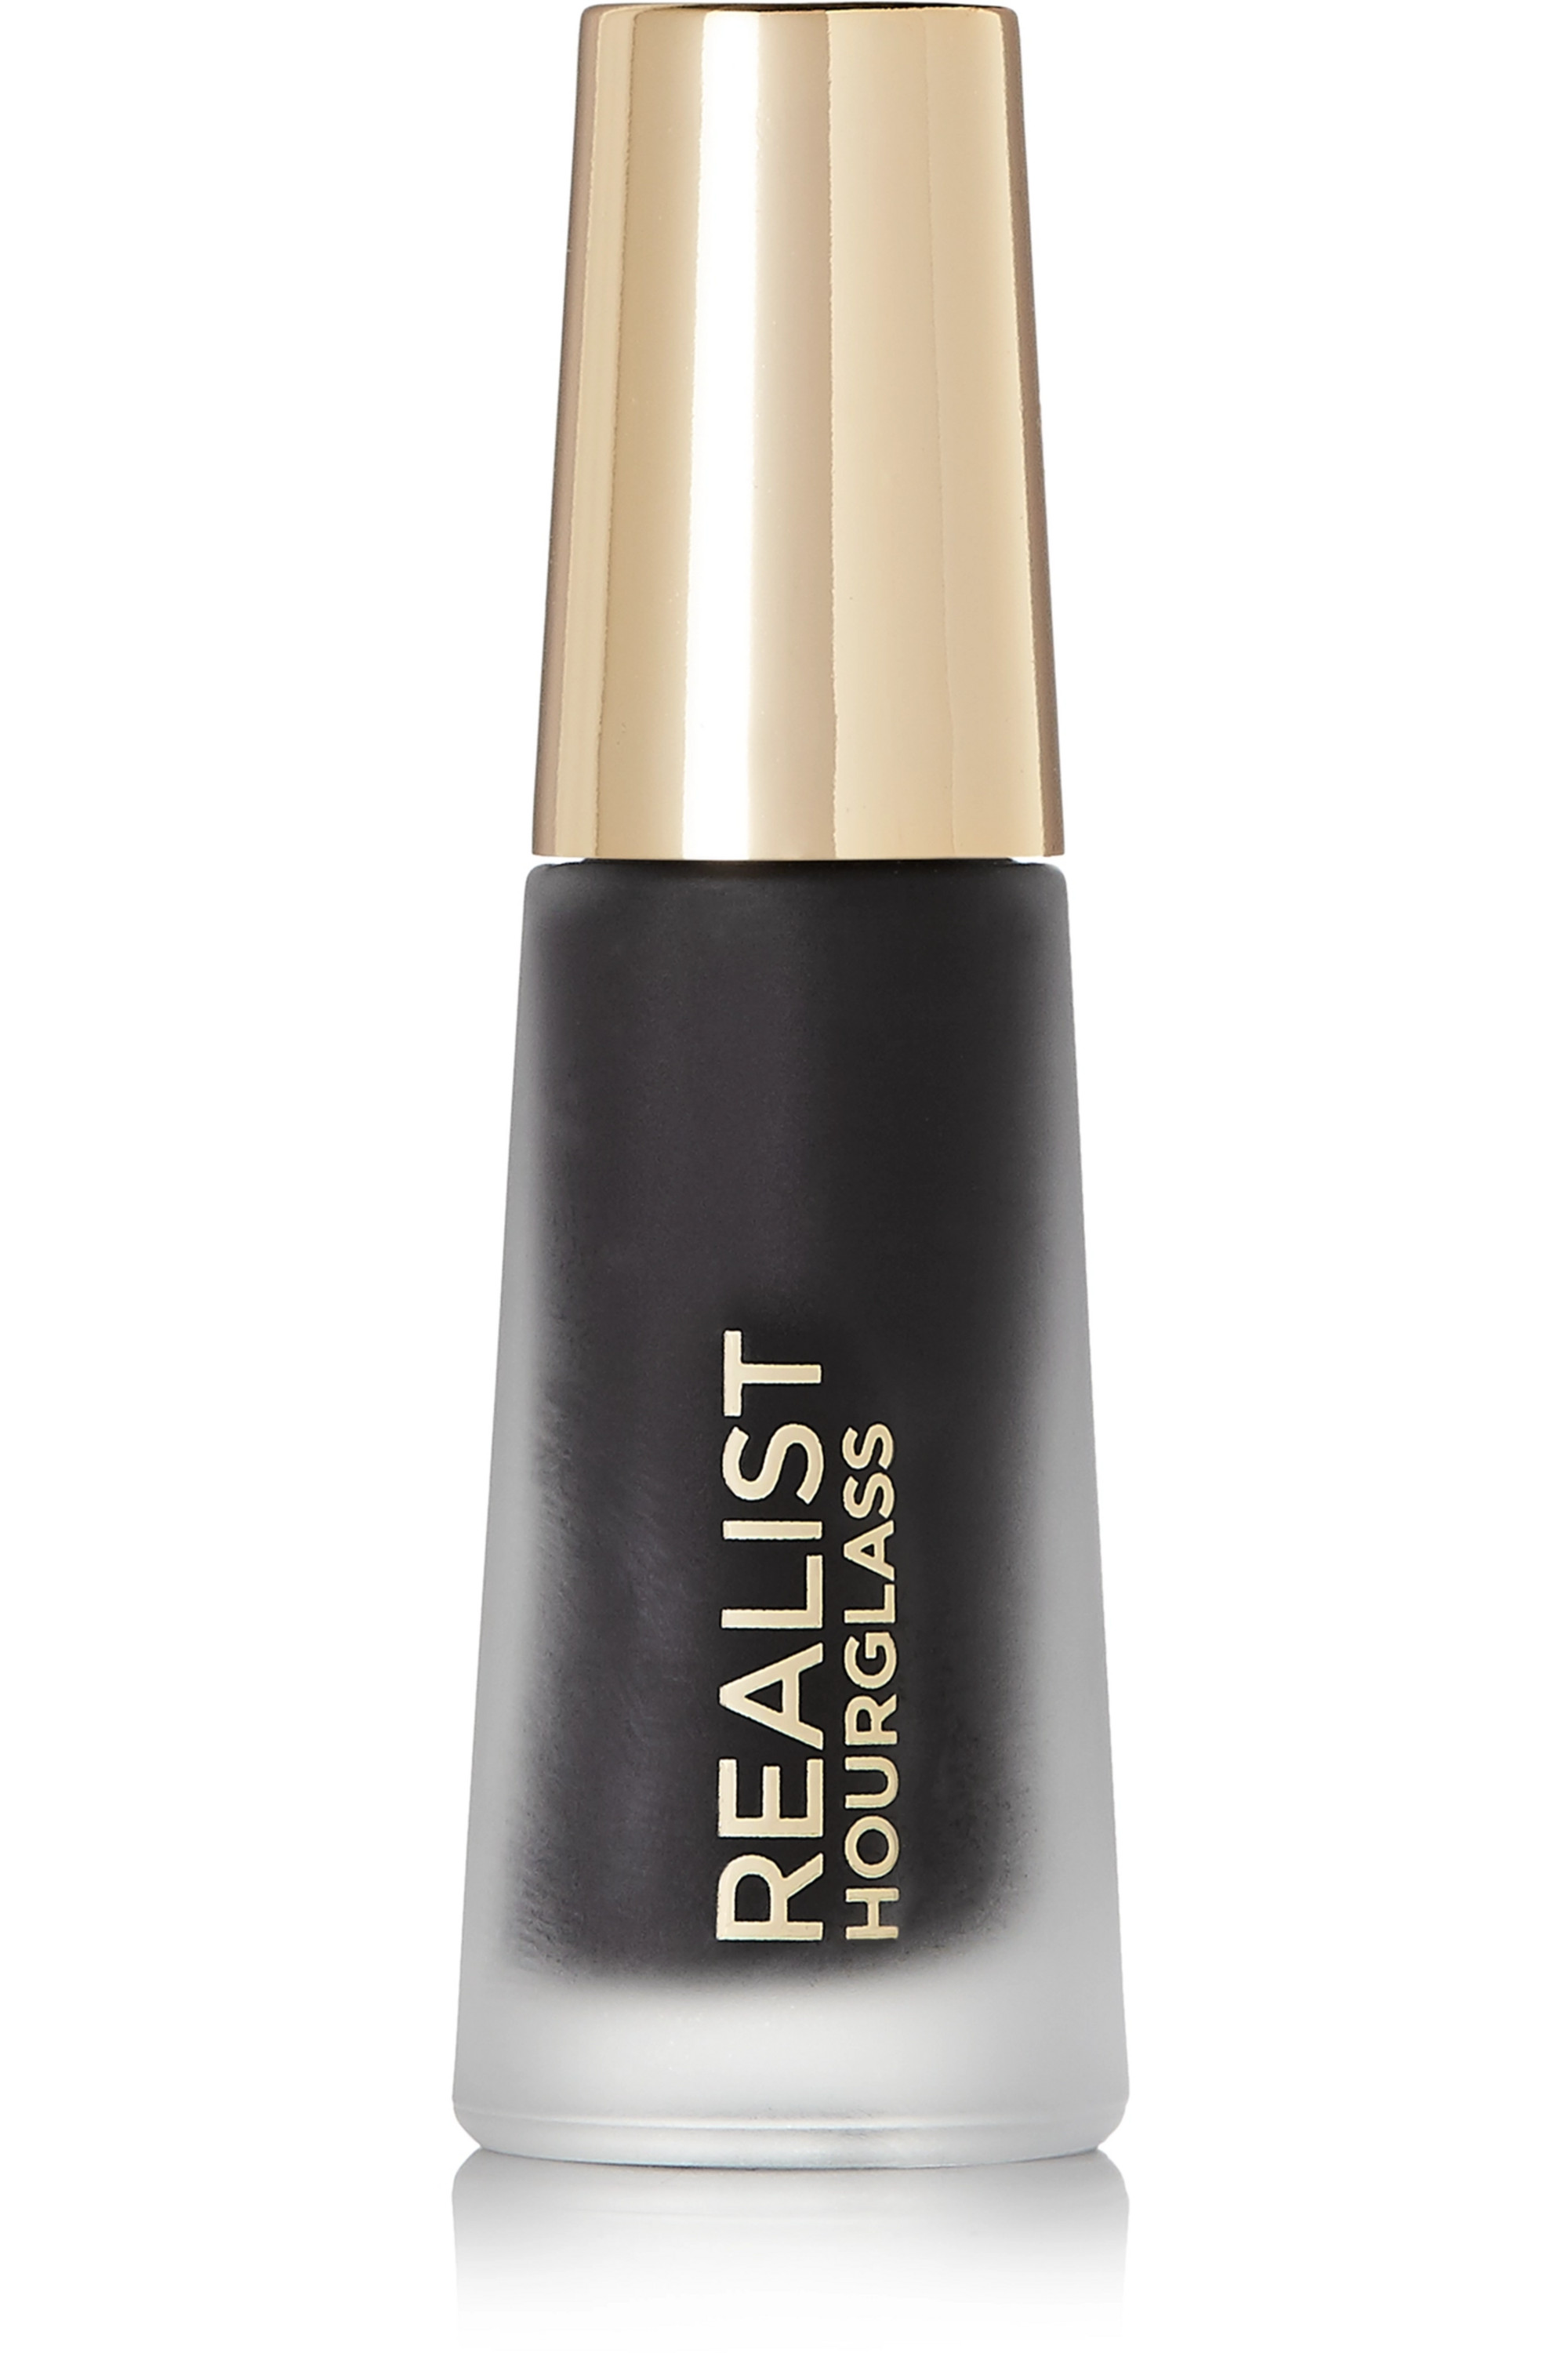 Hourglass The Curator Realist Defining Mascara